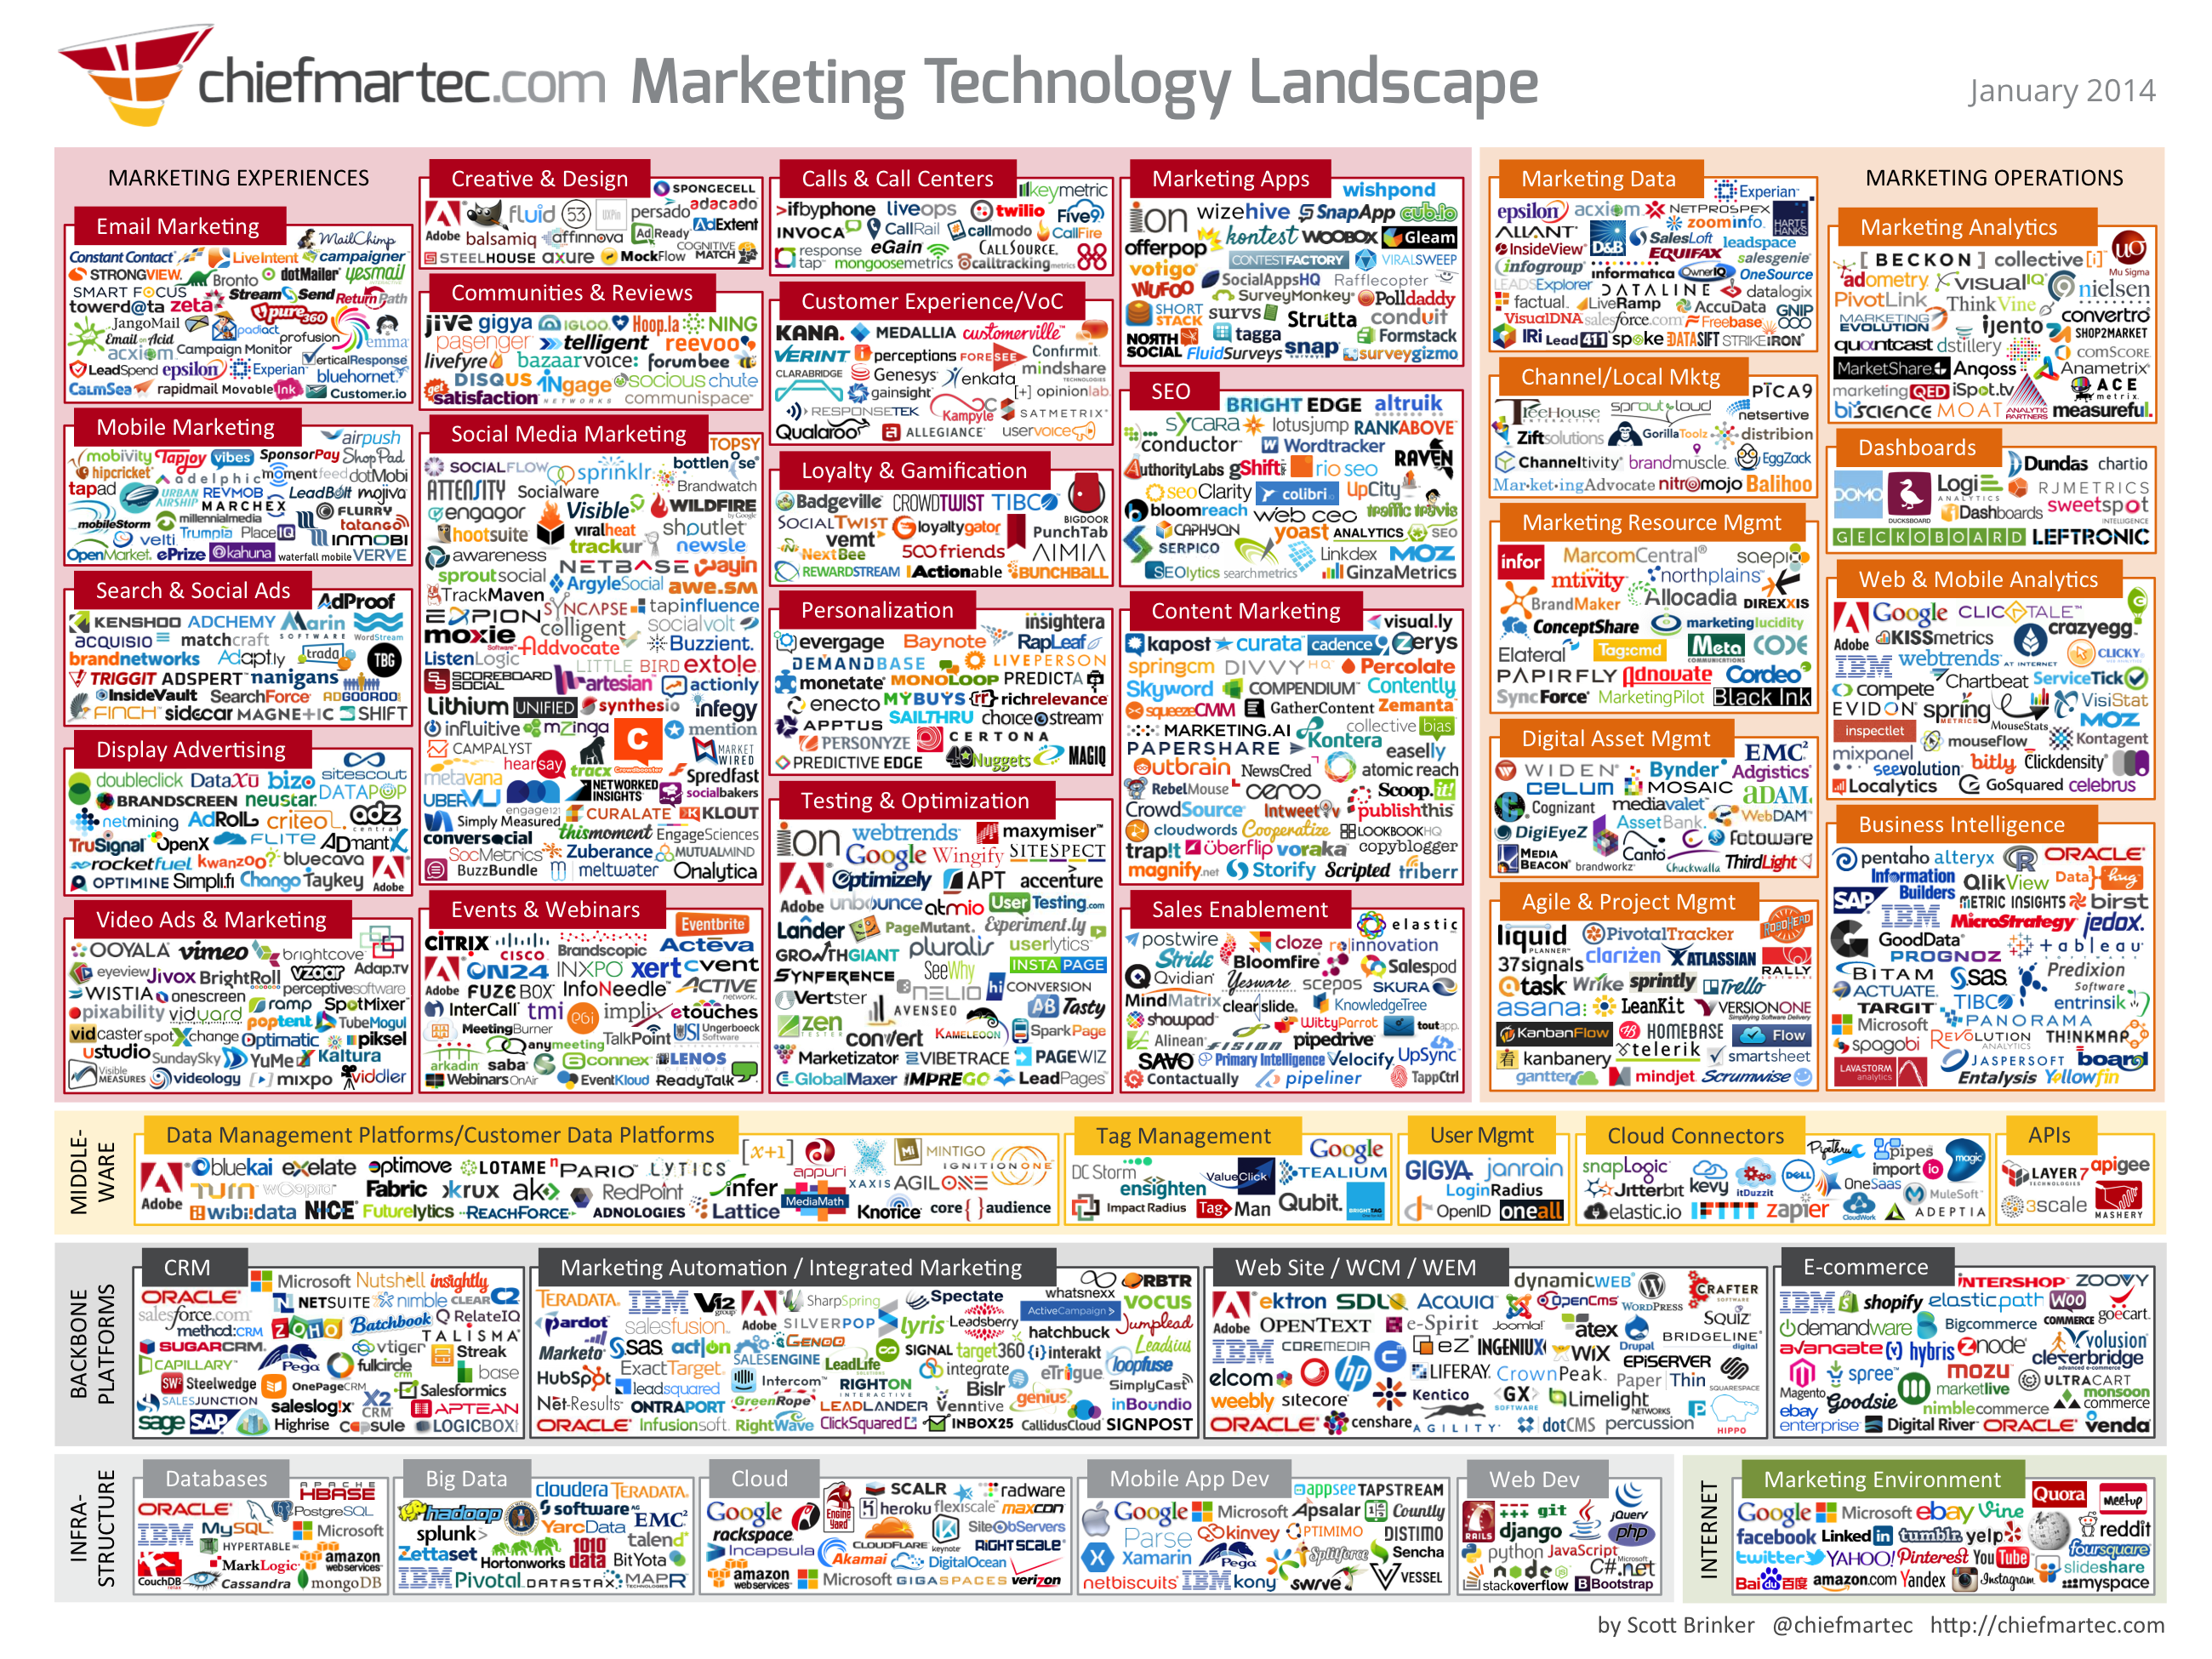 Marketing Technology Landscape